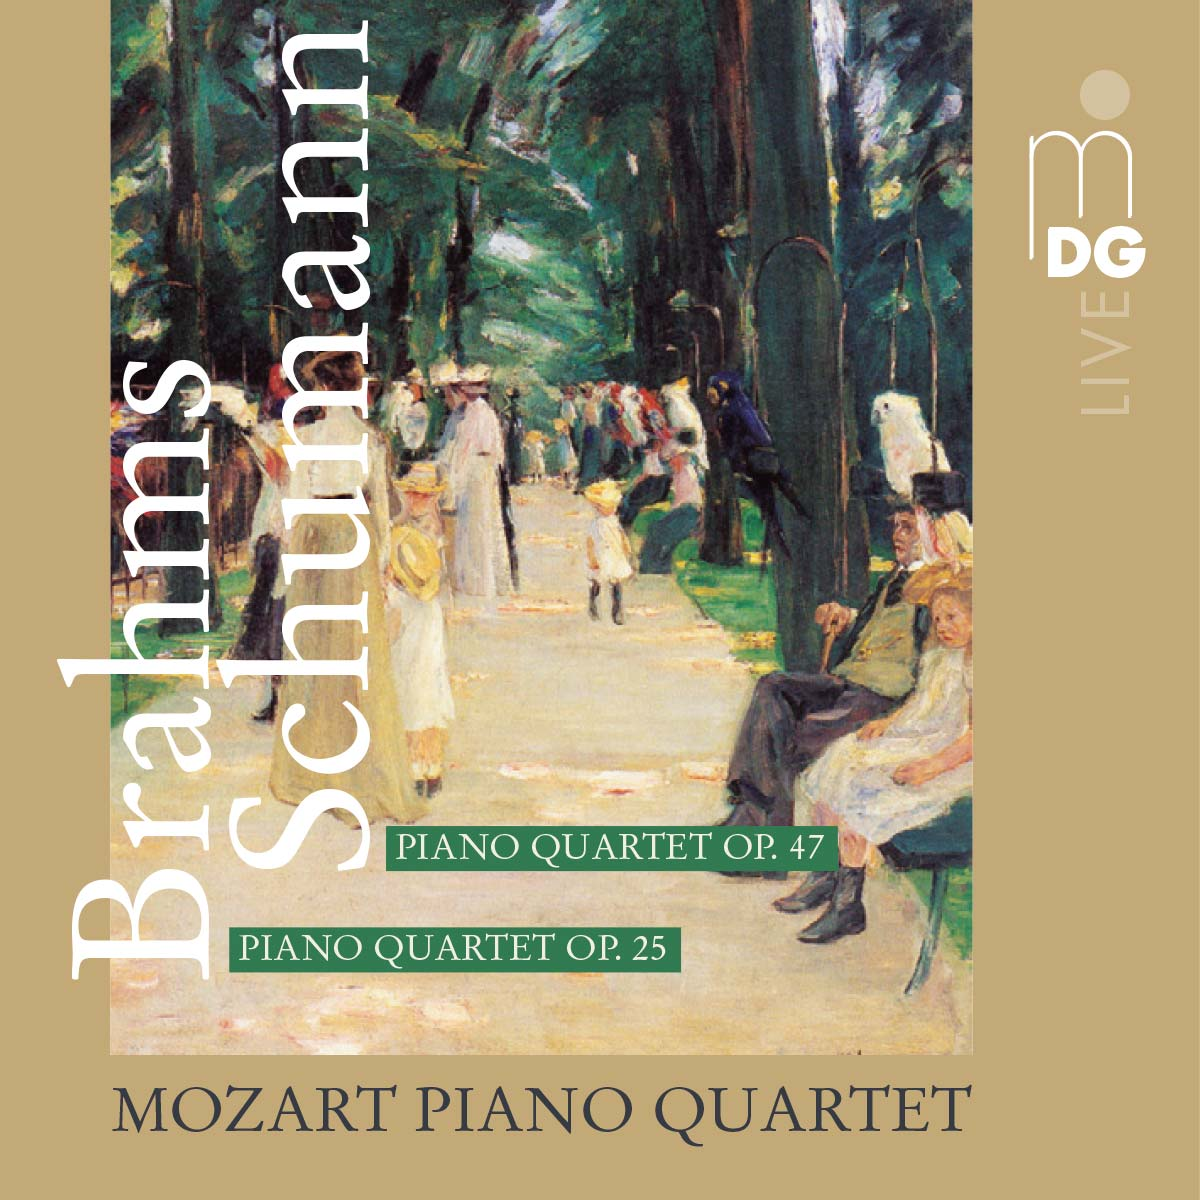 CD Schumann / Brahms: Piano Quartets by the Mozart Piano Quartet, Cover © Dabringhaus und Grimm Audiovision GmbH